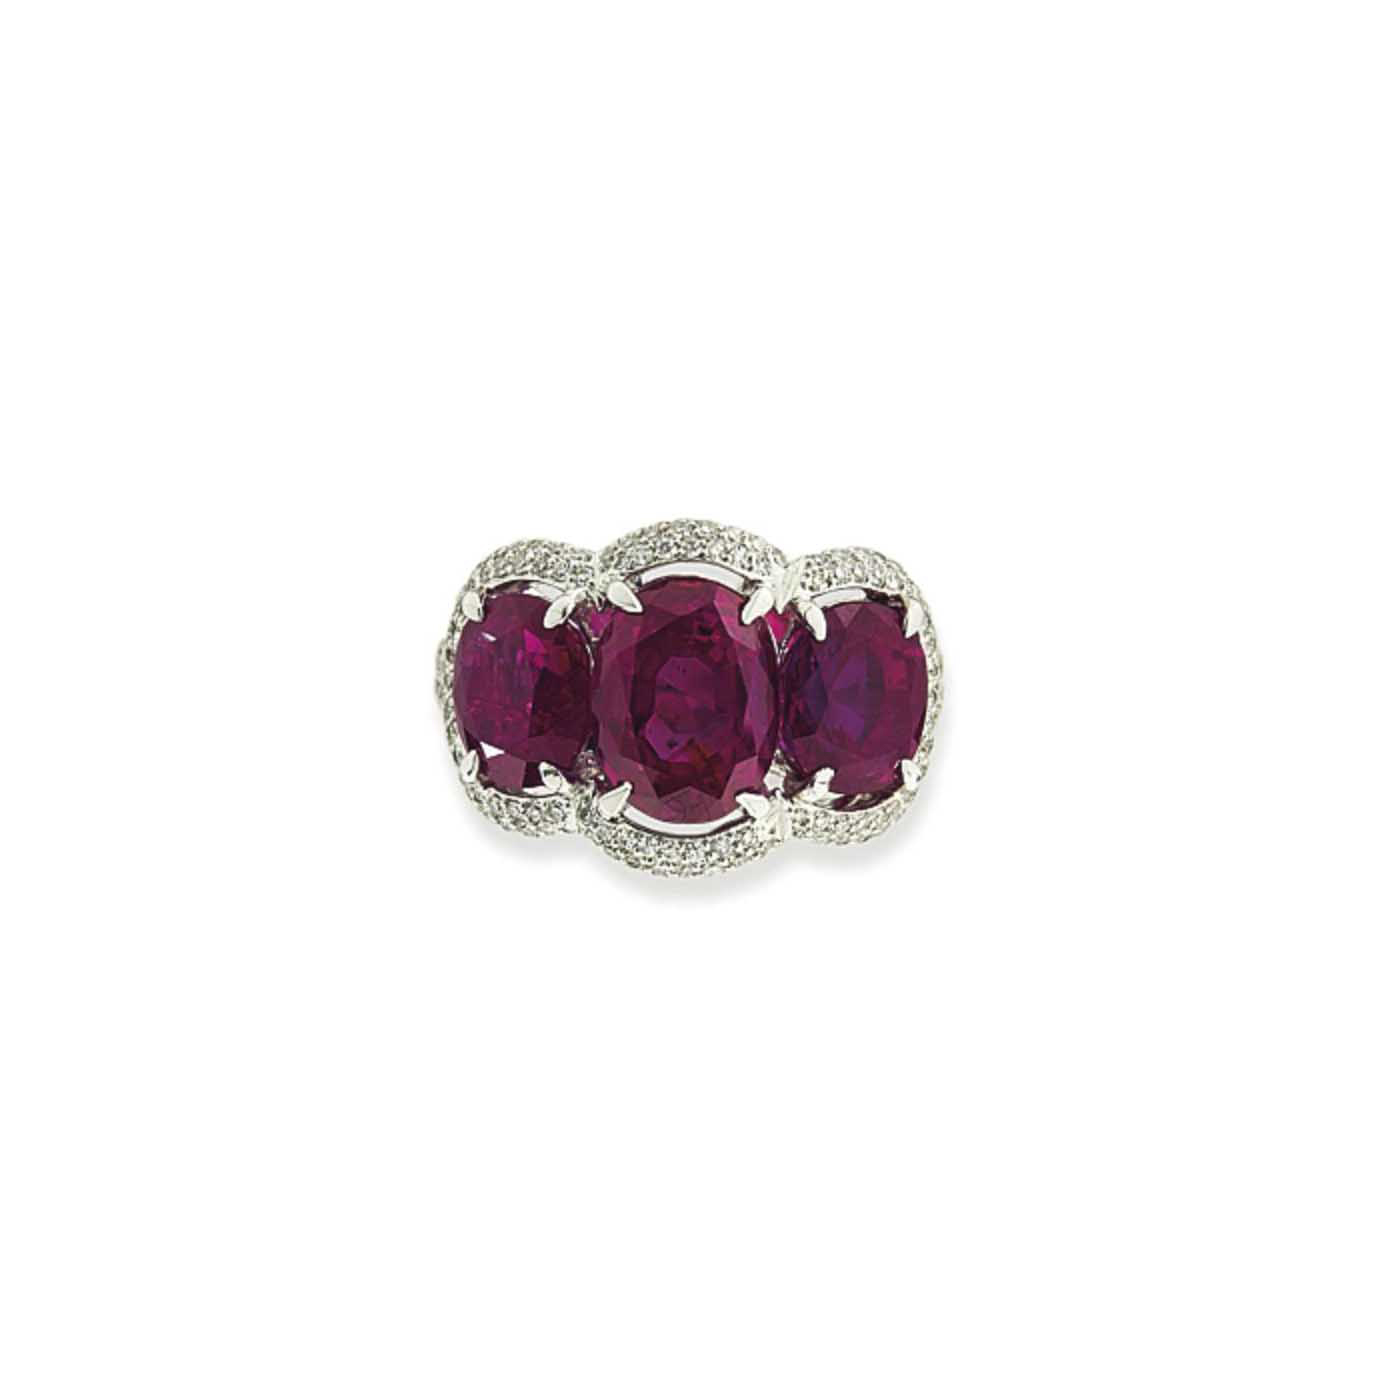 A RUBY AND DIAMOND THREE STONE RING, BY DAVID MORRIS